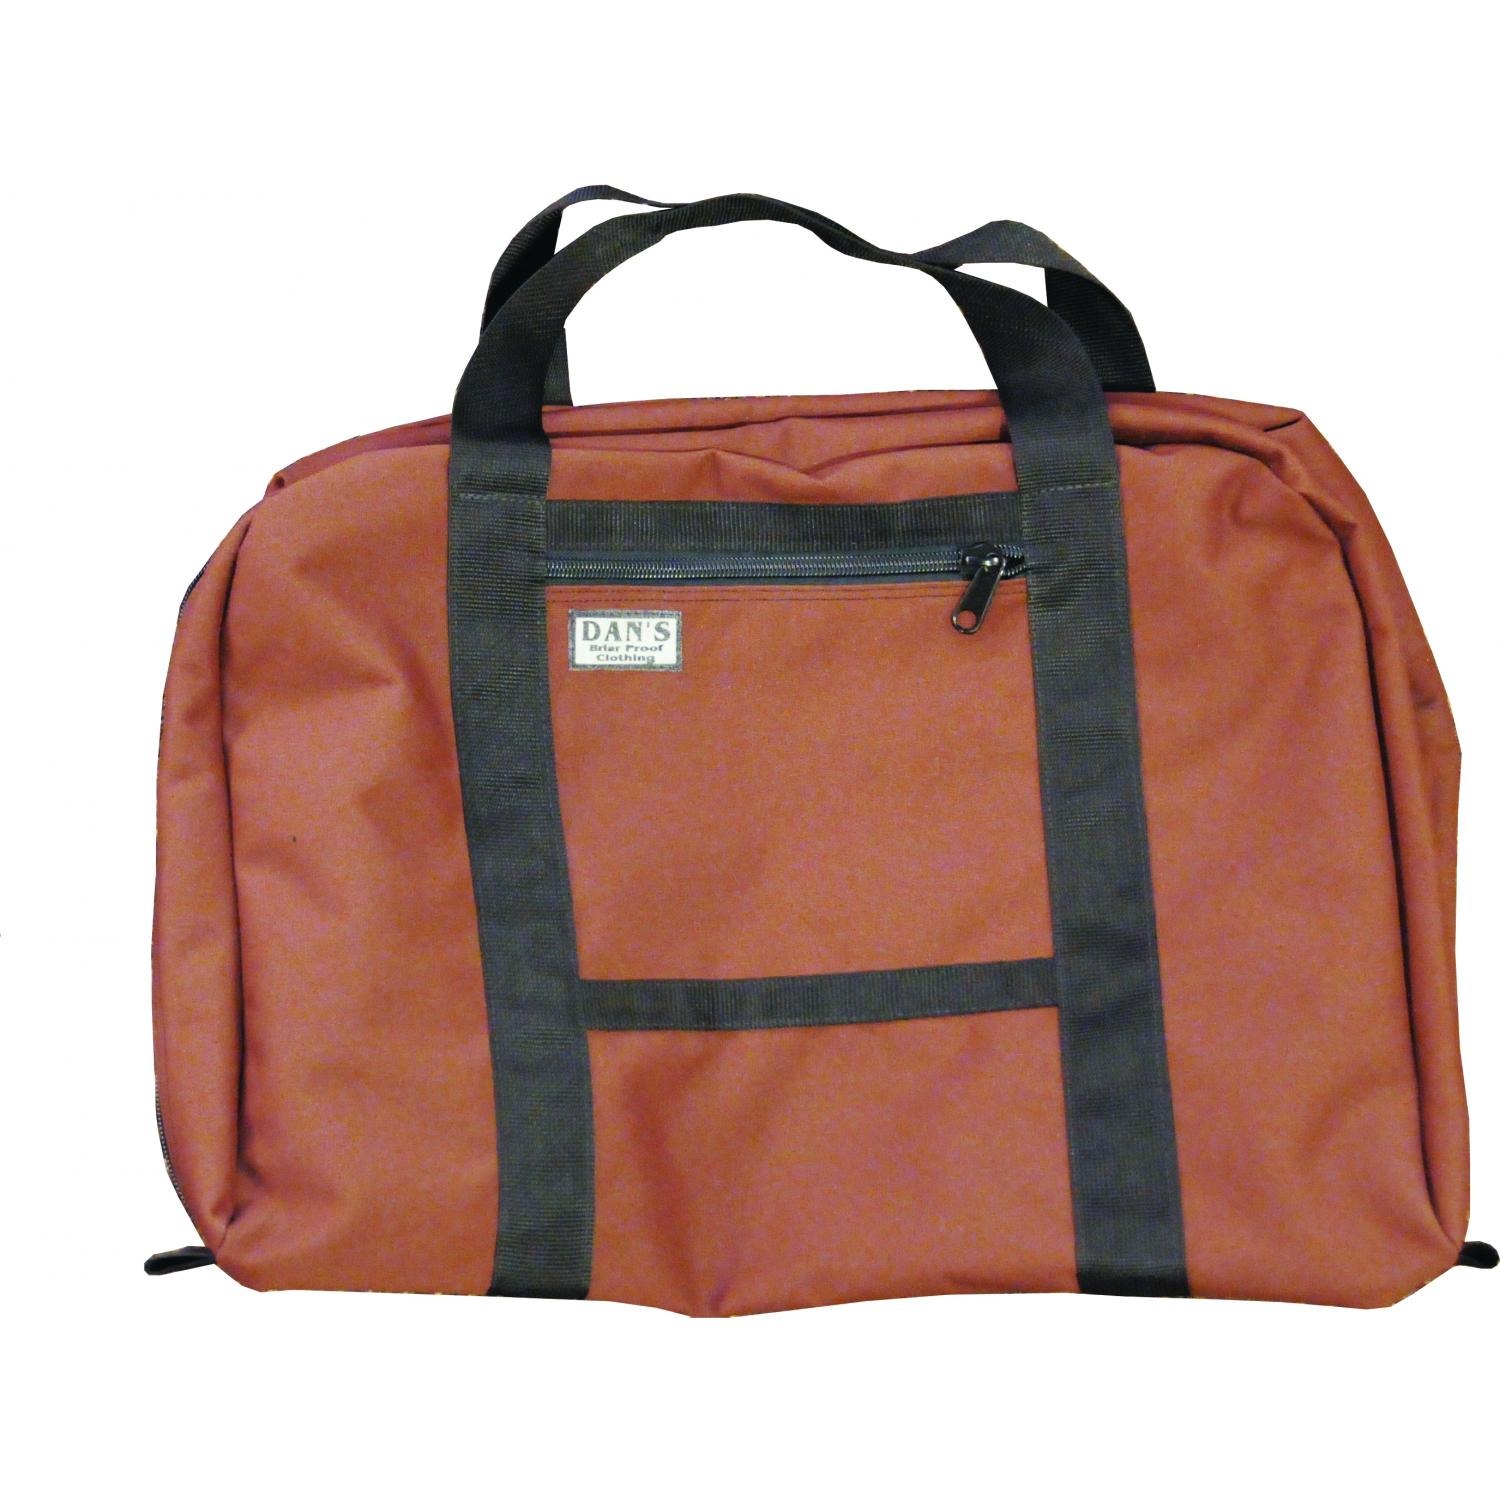 Dans Hunting Gear Extra Large Gear Bag